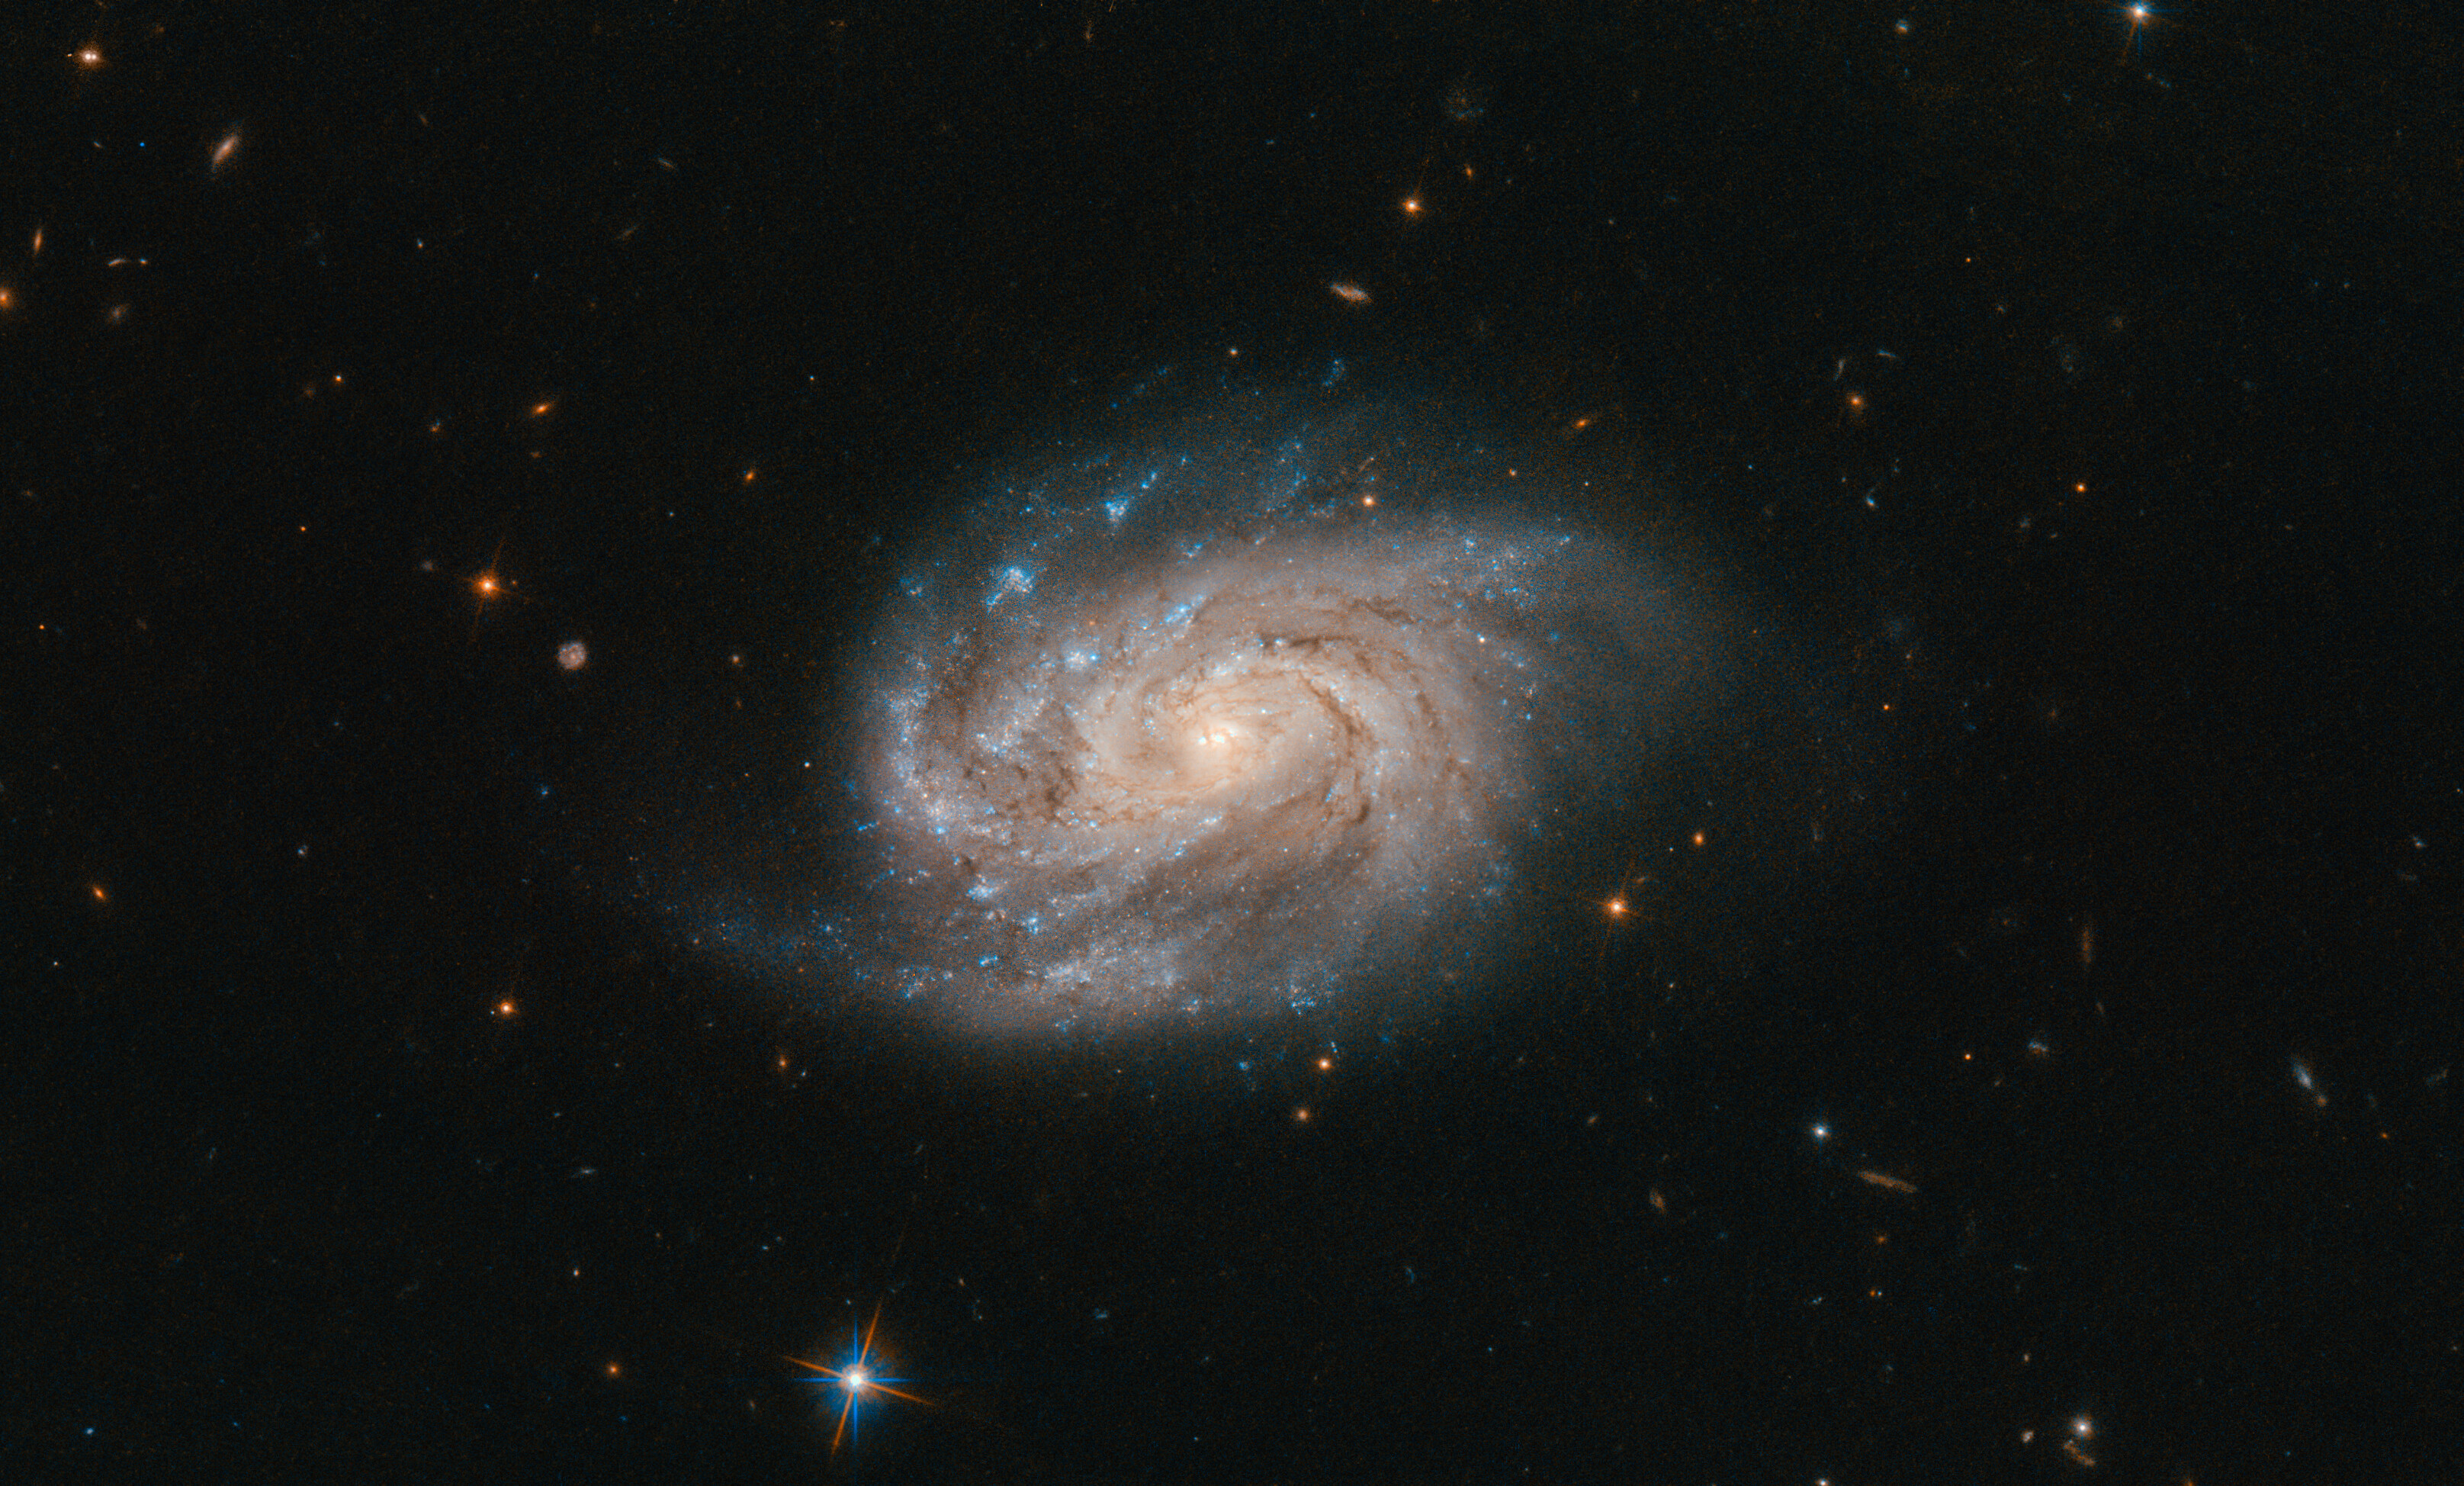 Hubble Views Galaxy From Famous Catalog